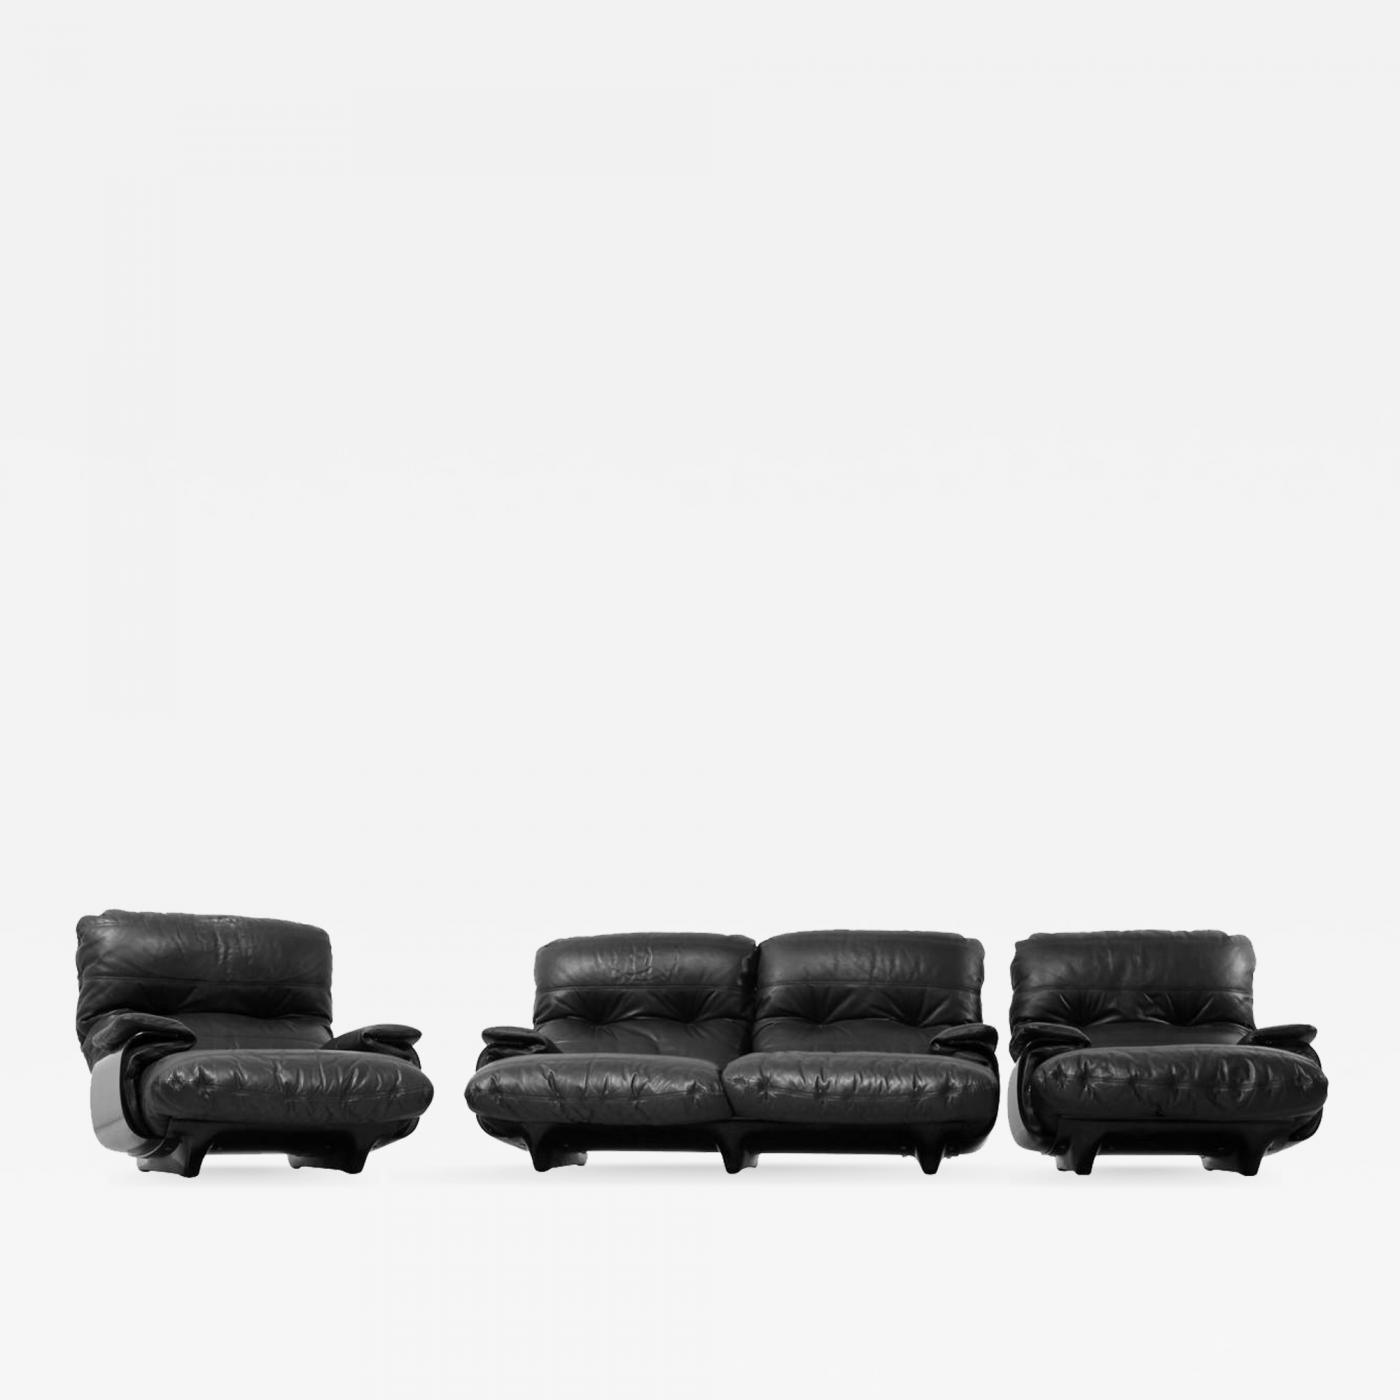 Ligne Roset Sofa Michel Ducaroy Ducaroy Ligne Roset Sofa Set In Brown Perspex With Black Leather